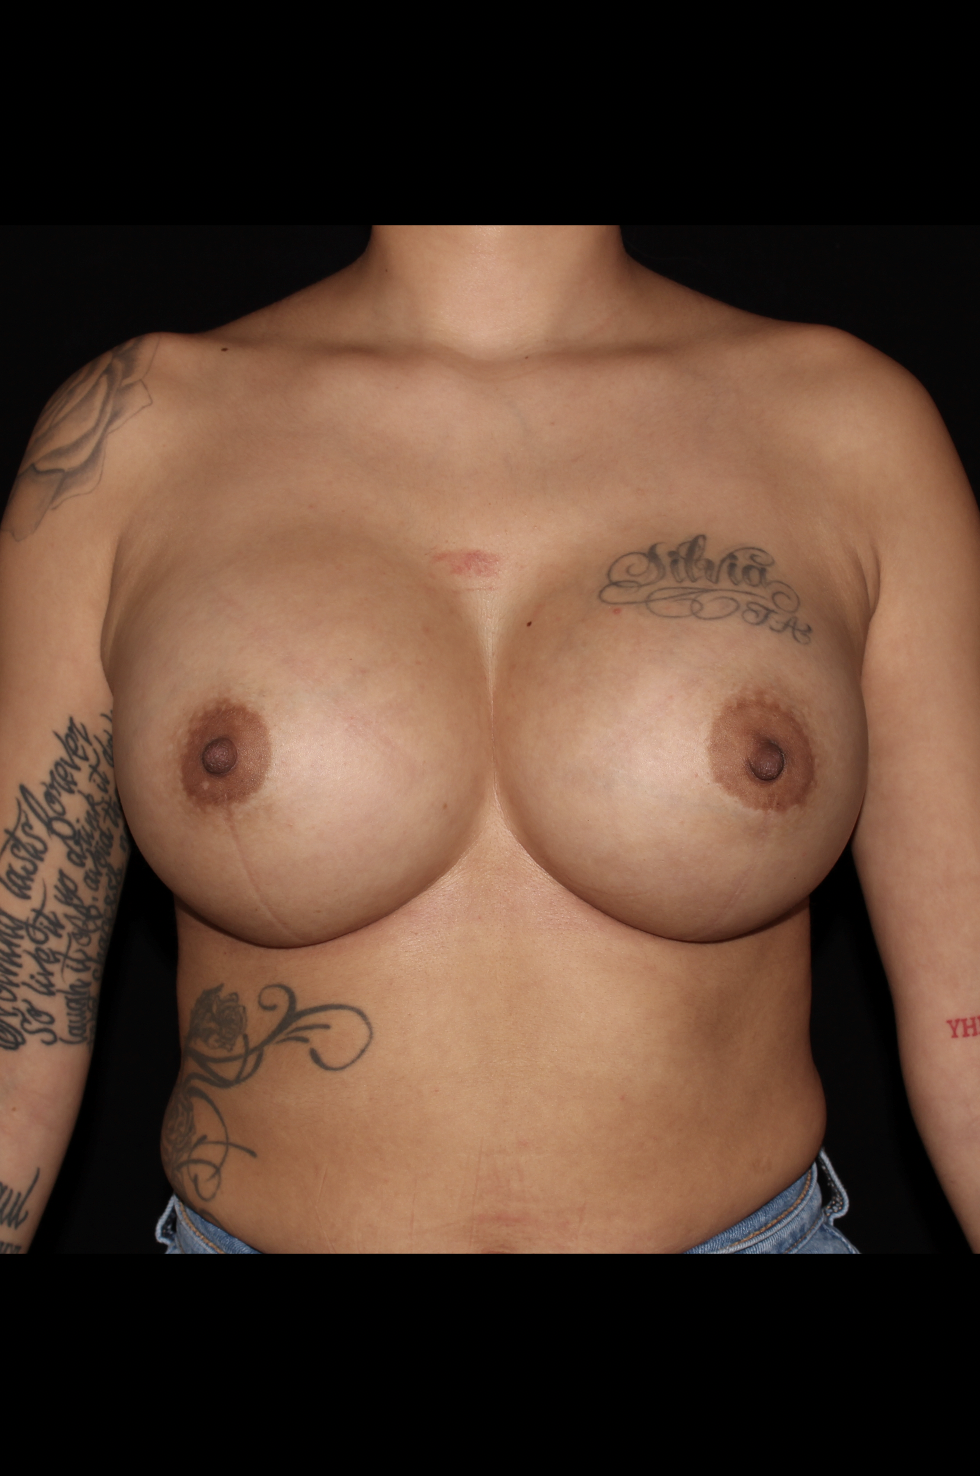 After Breast Augmentation - Rapid Recovery Breast Augmentation